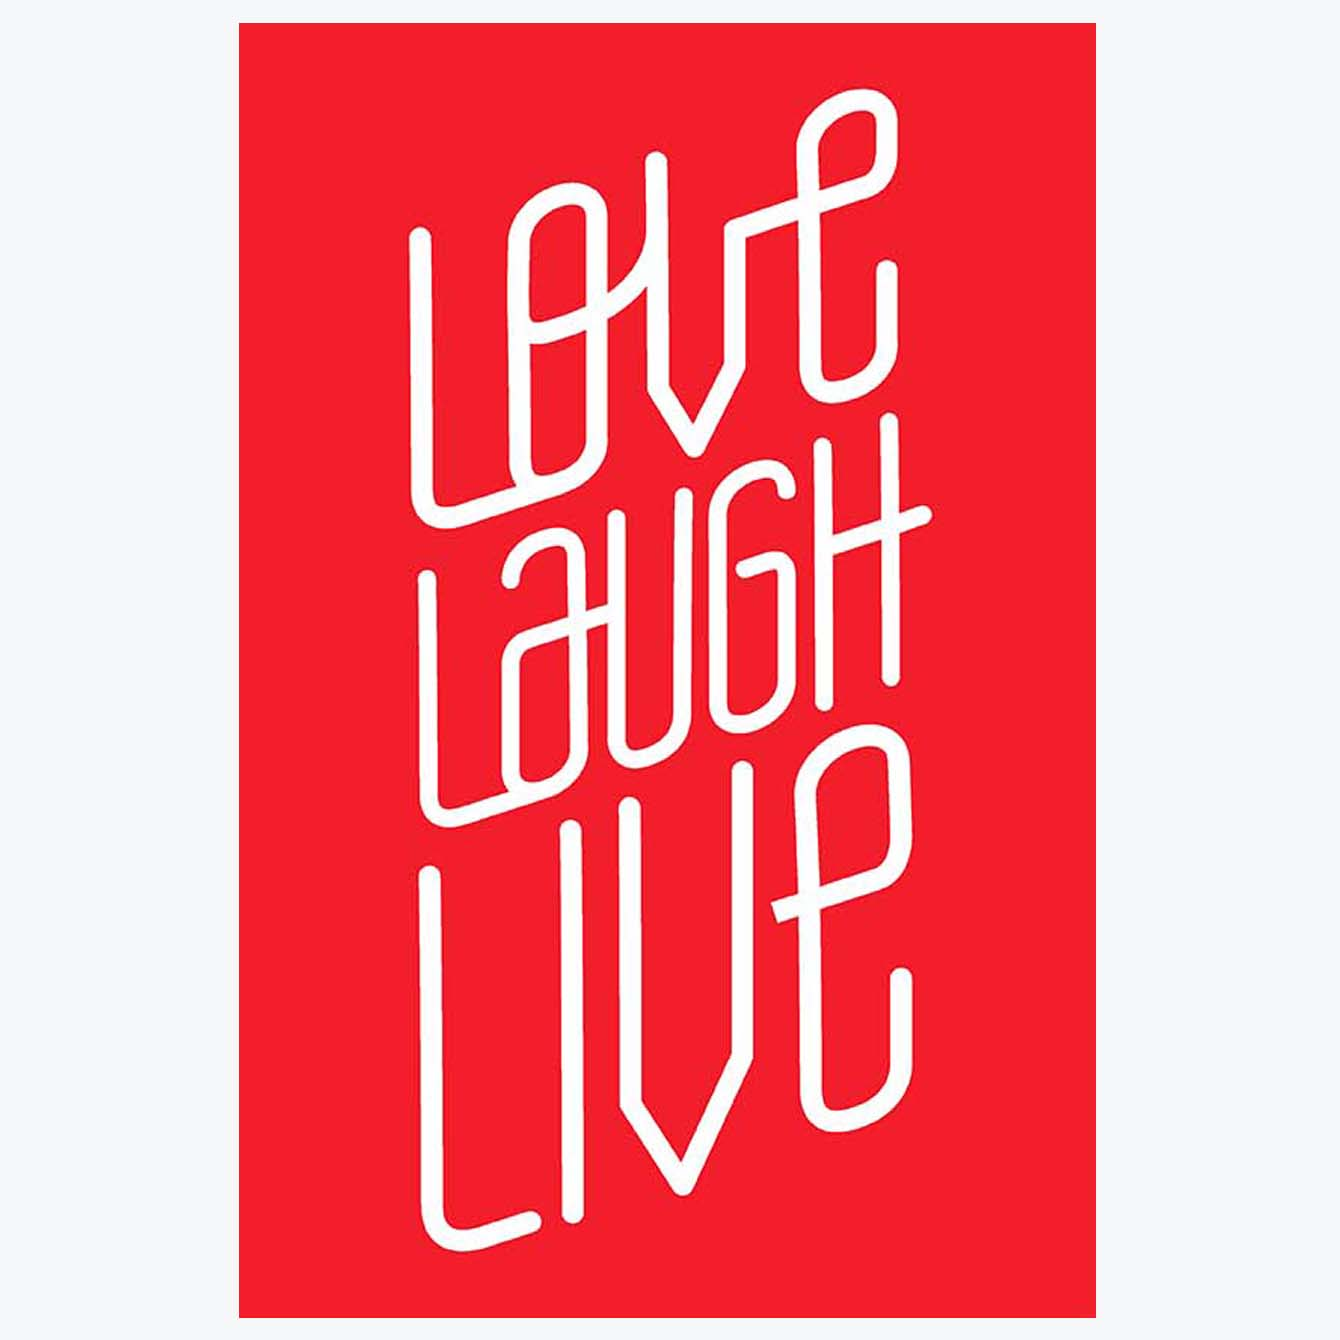 Love Laugh Live Typography Posters